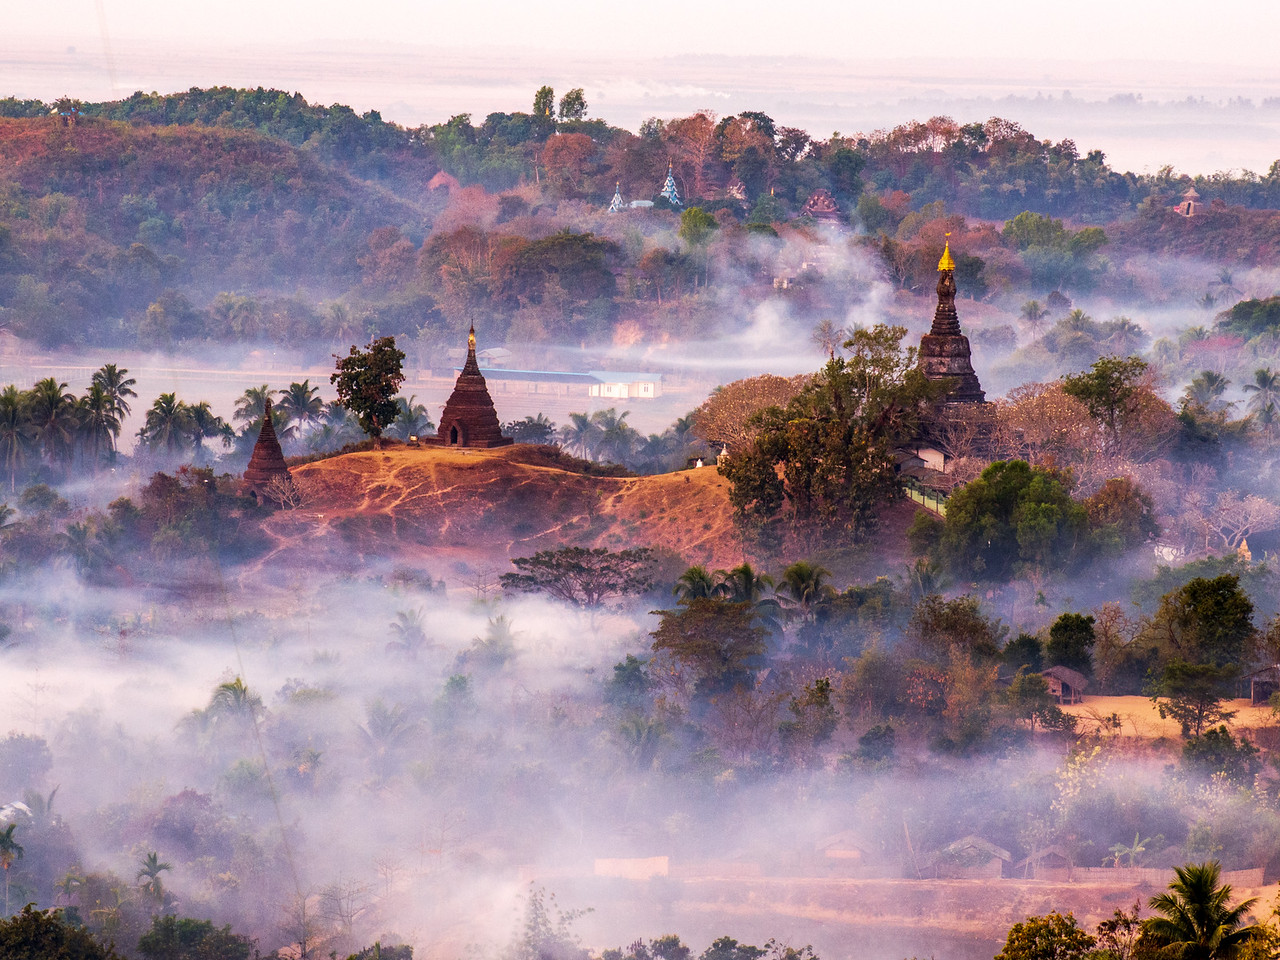 Fog Shrouds the Temples of Mrauk OO